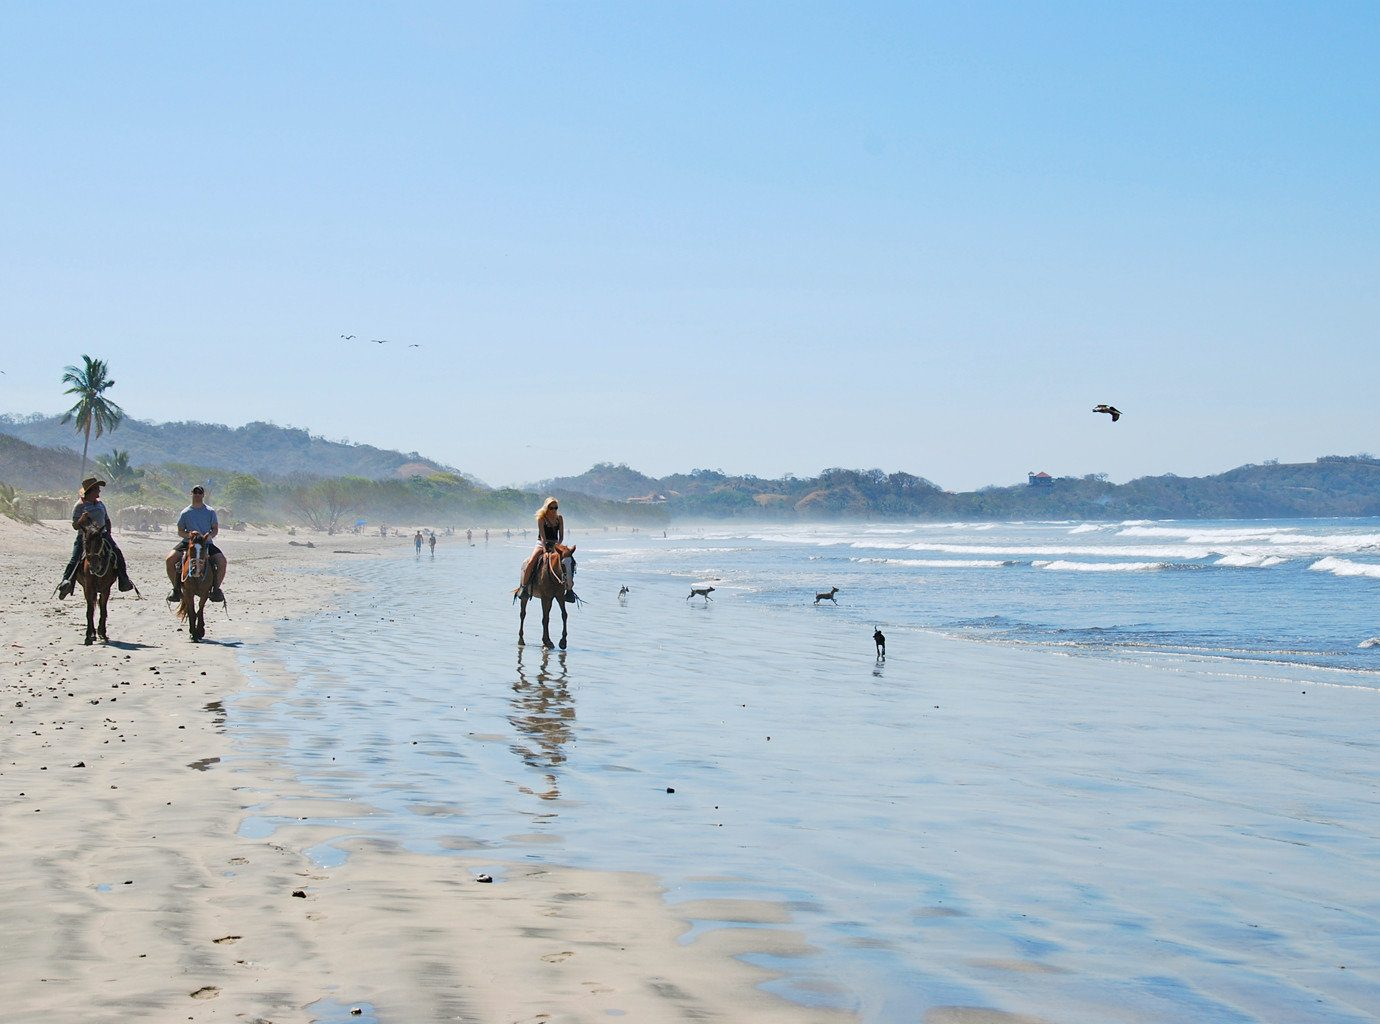 People riding horses in Costa Rica